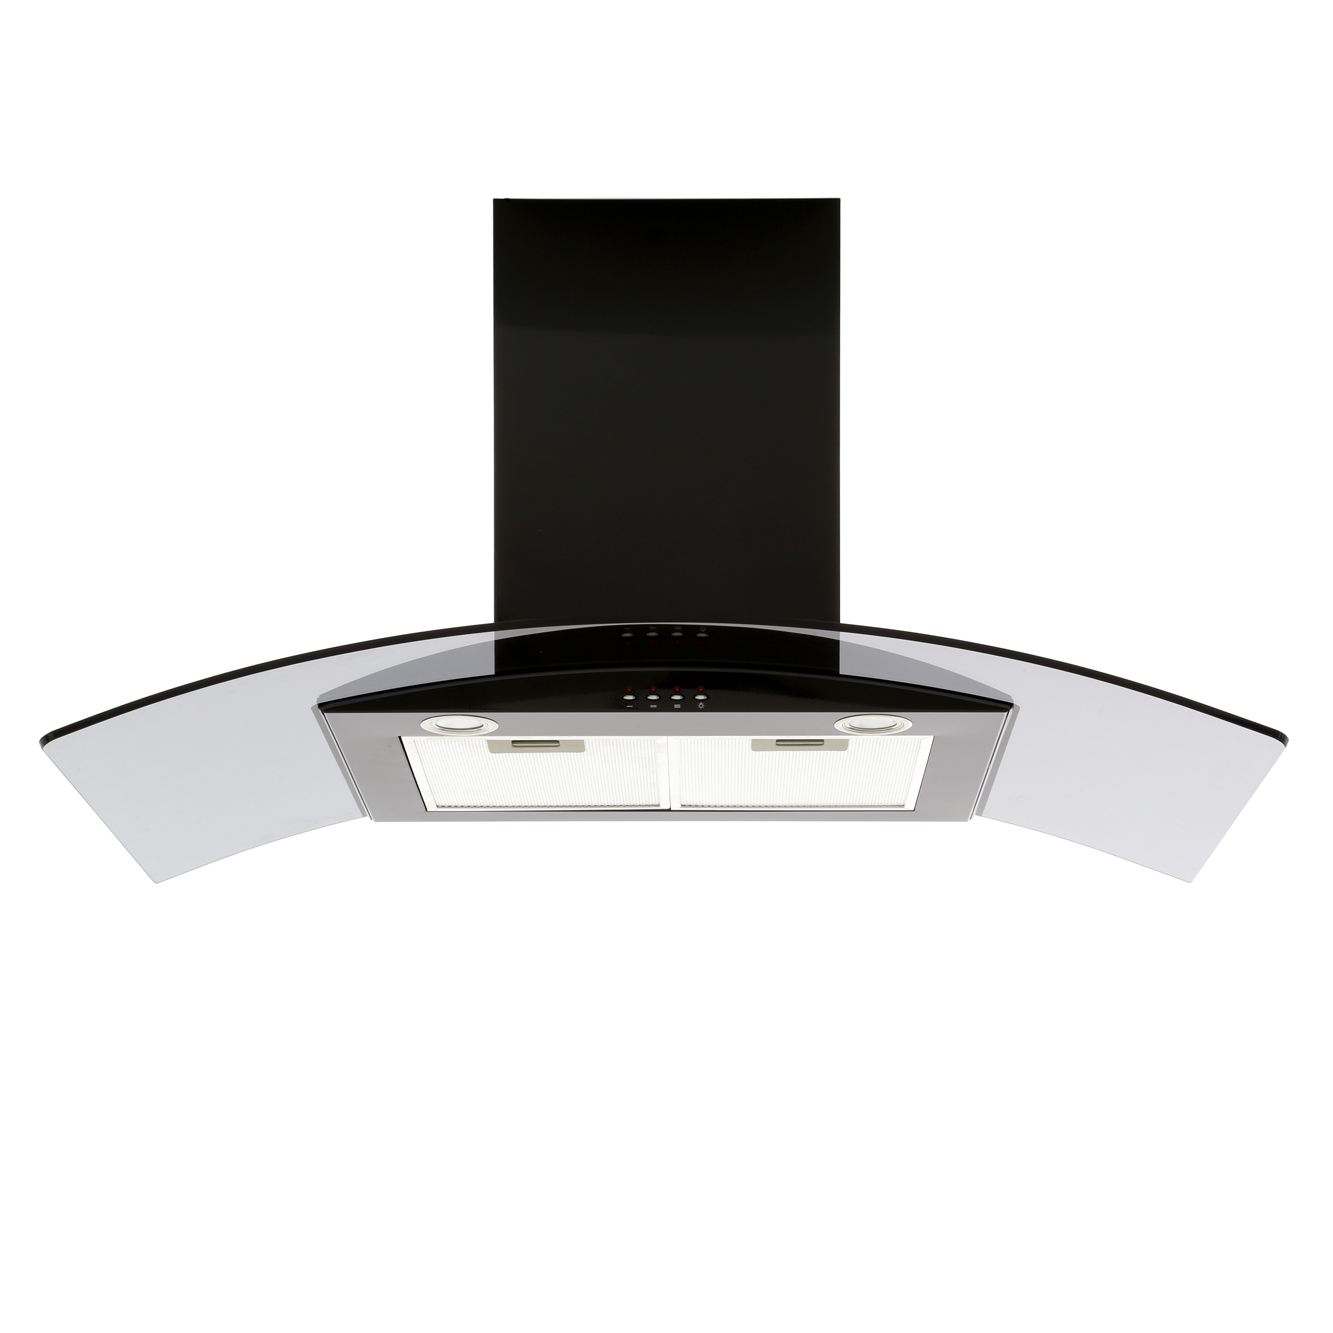 Baumatic BT10.3BGL 100cm Chimney Hood